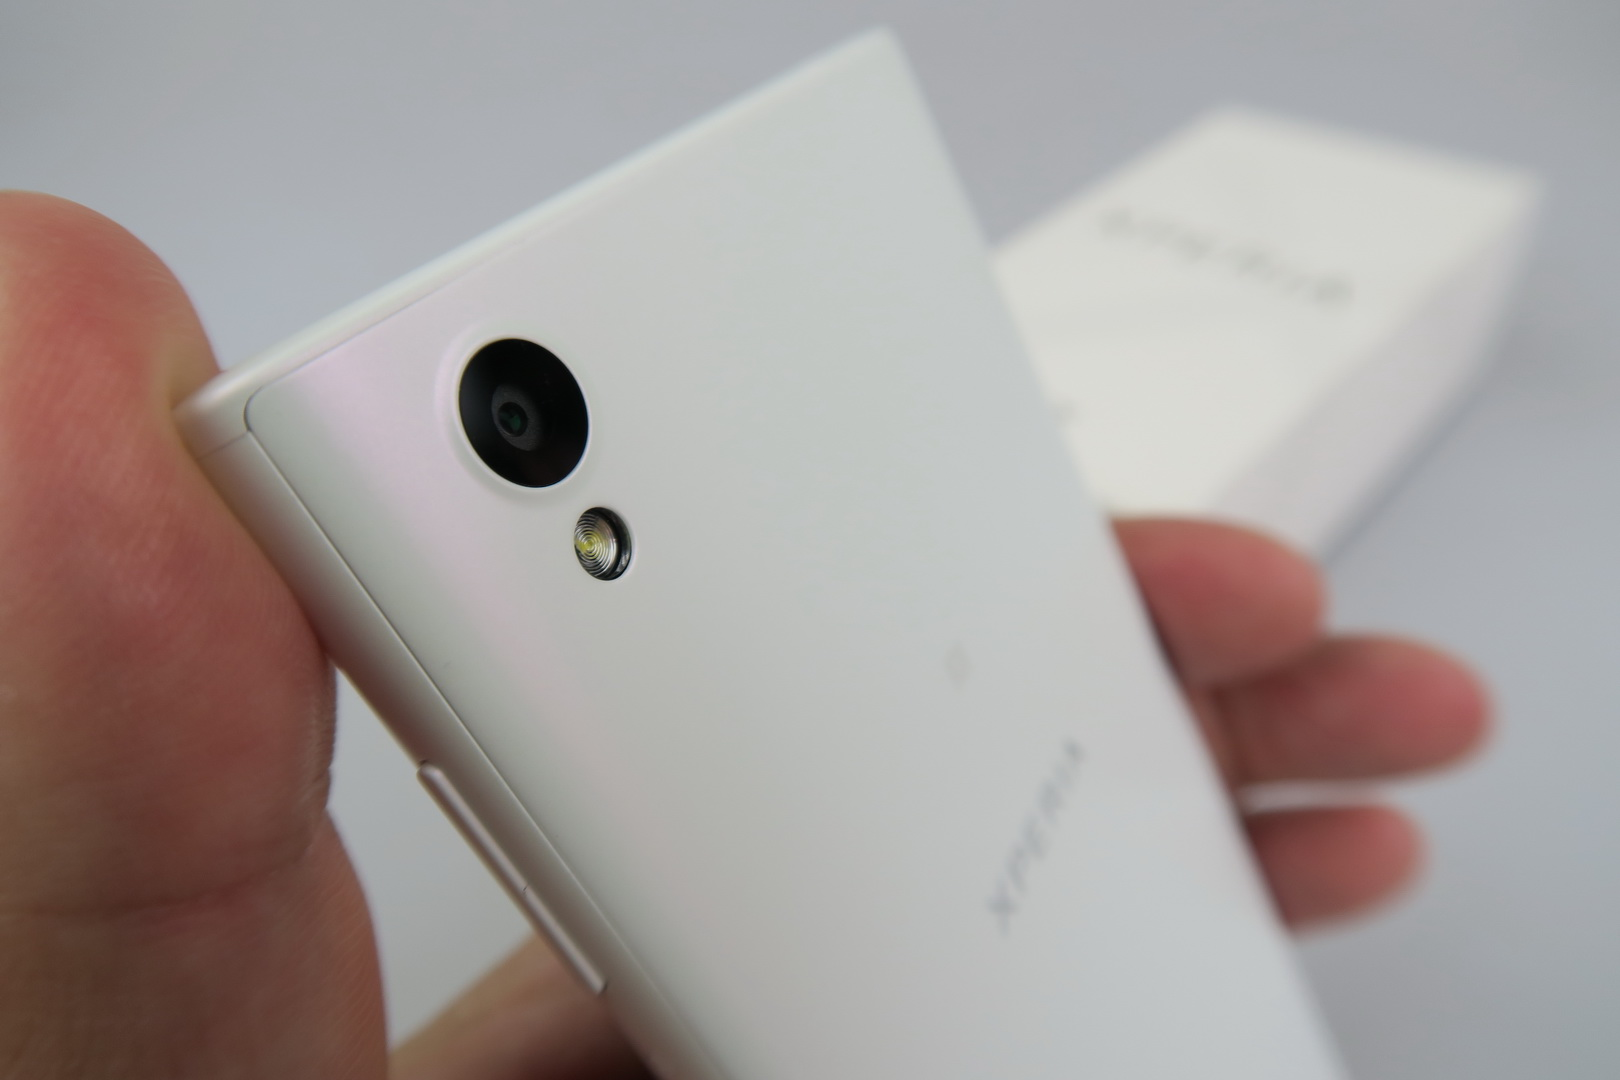 Sony xperia l1 unboxing sony goes affordable again video try watching this video on youtube or enable javascript if it is disabled in your browser ccuart Gallery